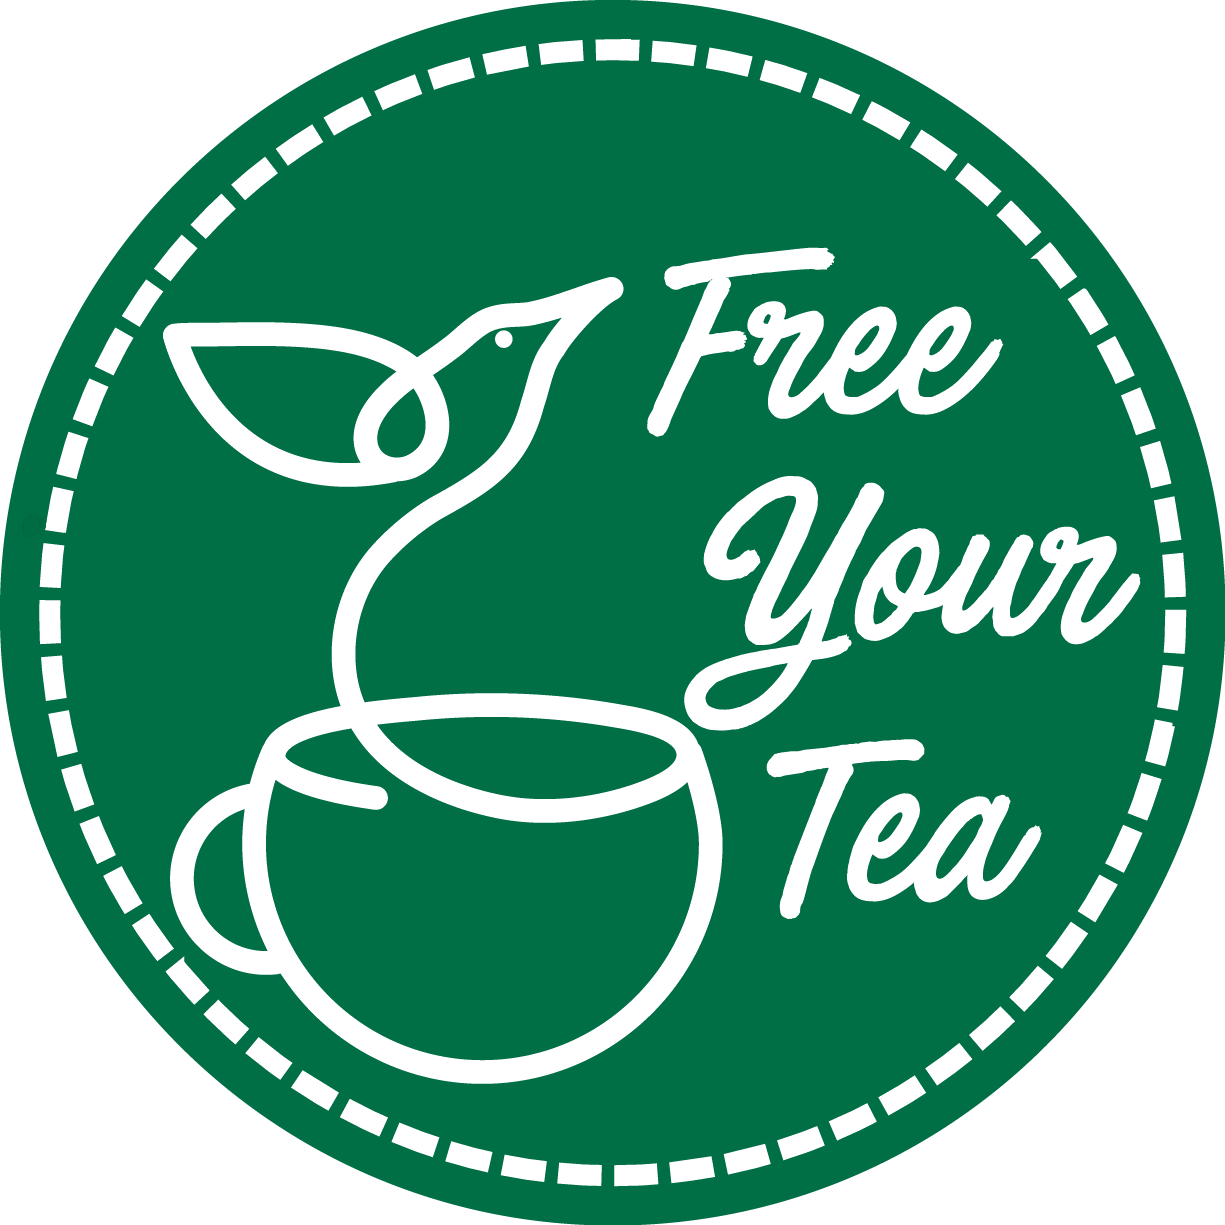 personalized tea subscription free your tea corporate tea gifts